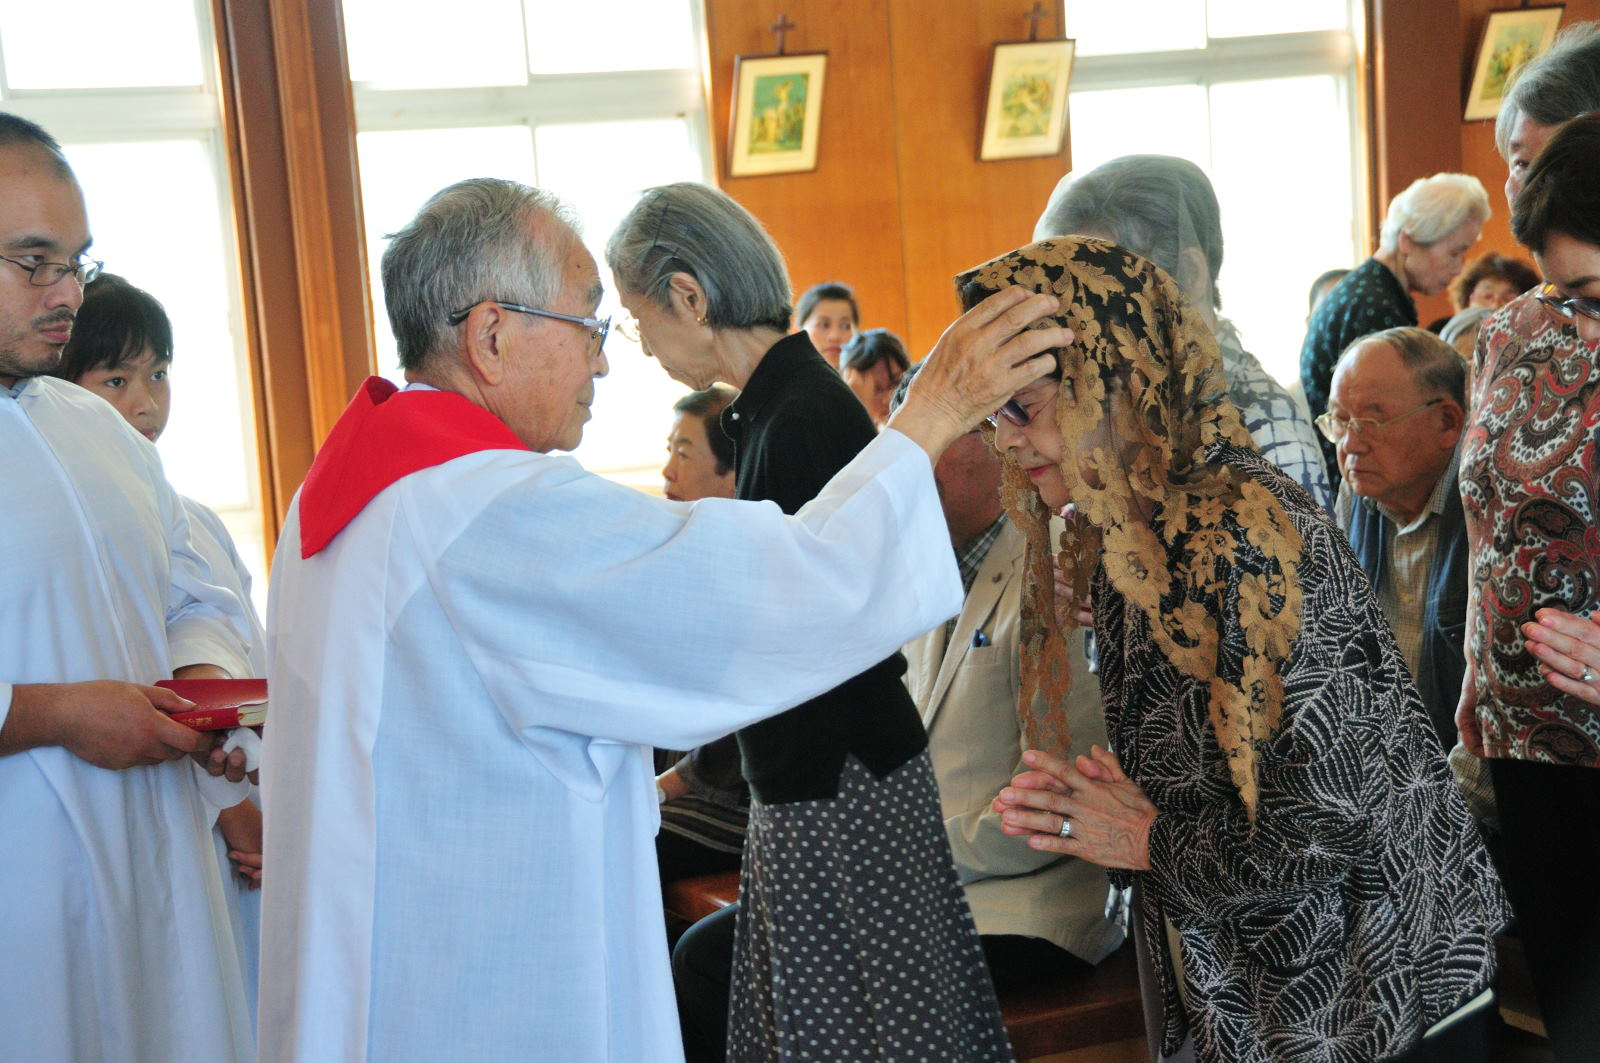 20140914_blessing_the_aged_03